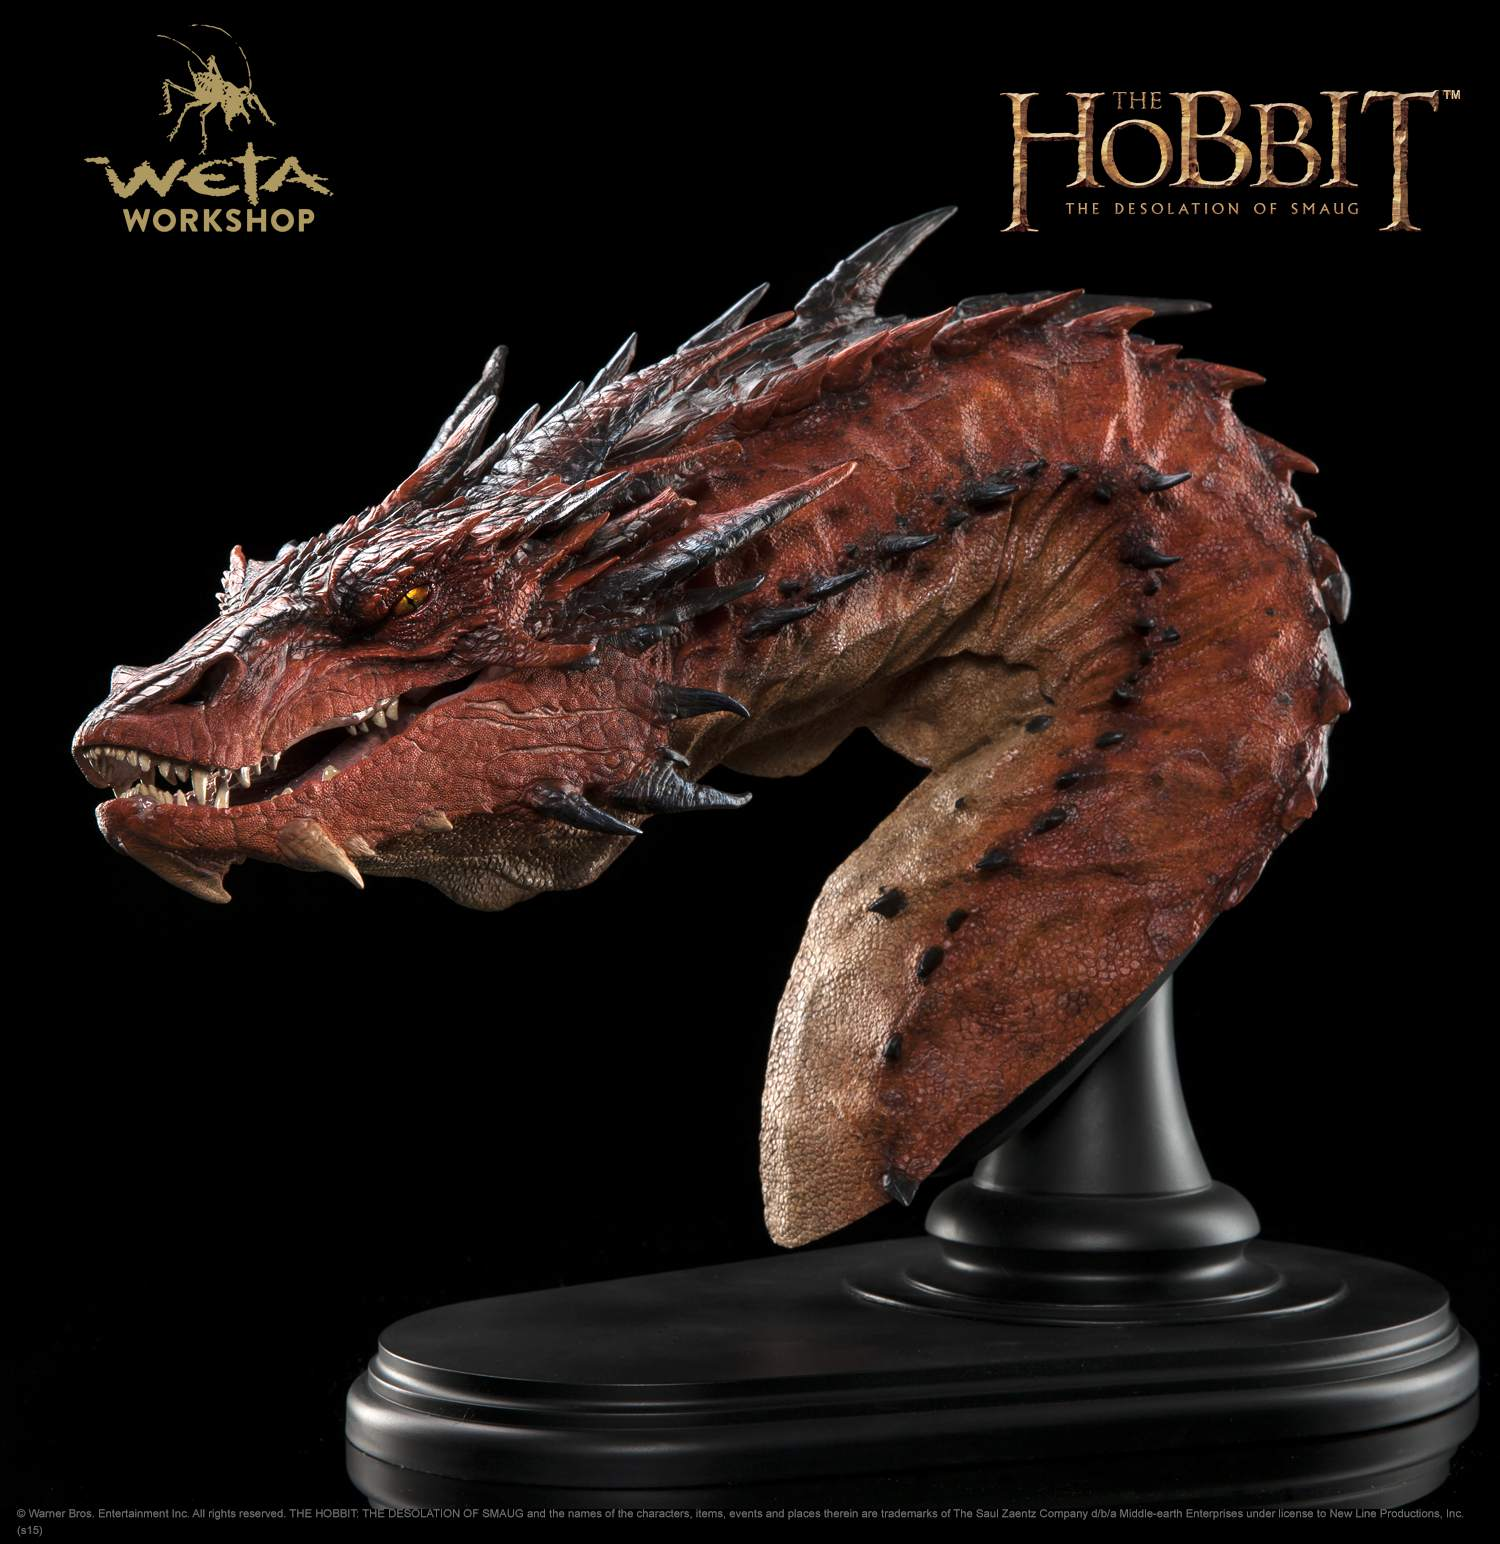 Hobbit Smaug bust by Weta